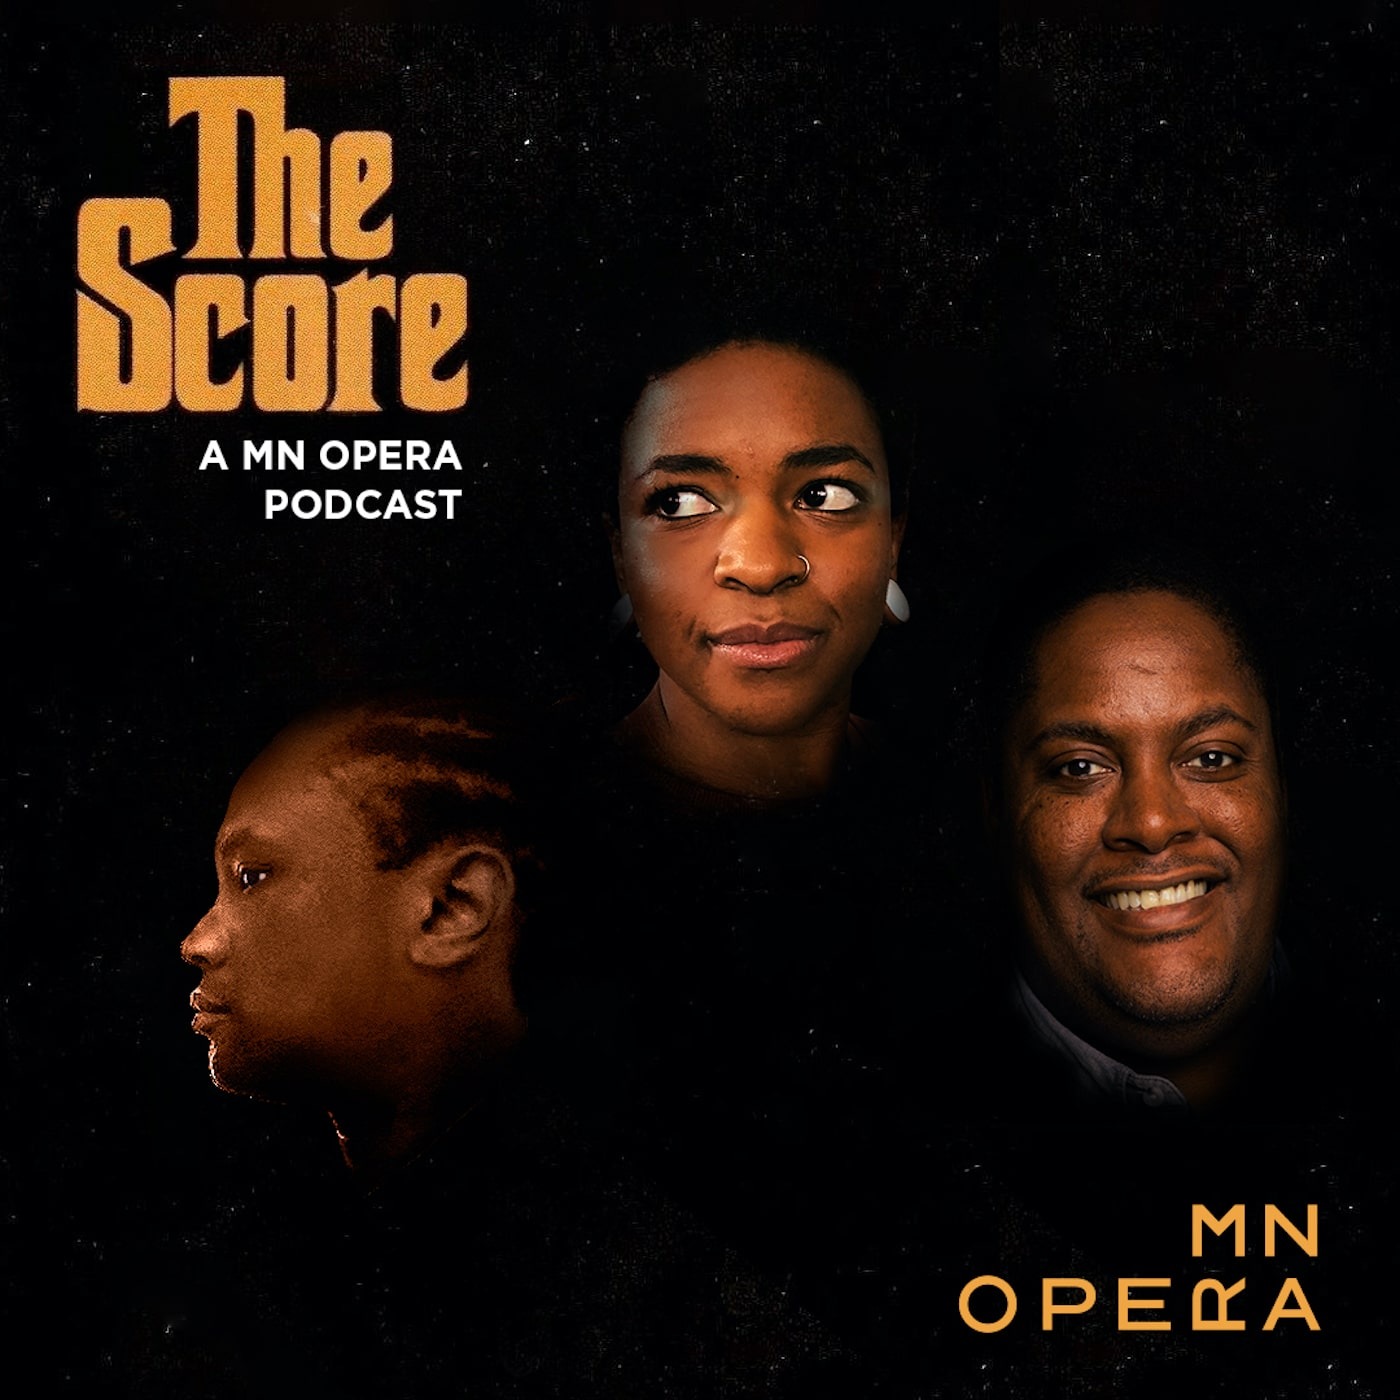 Show artwork for The Score